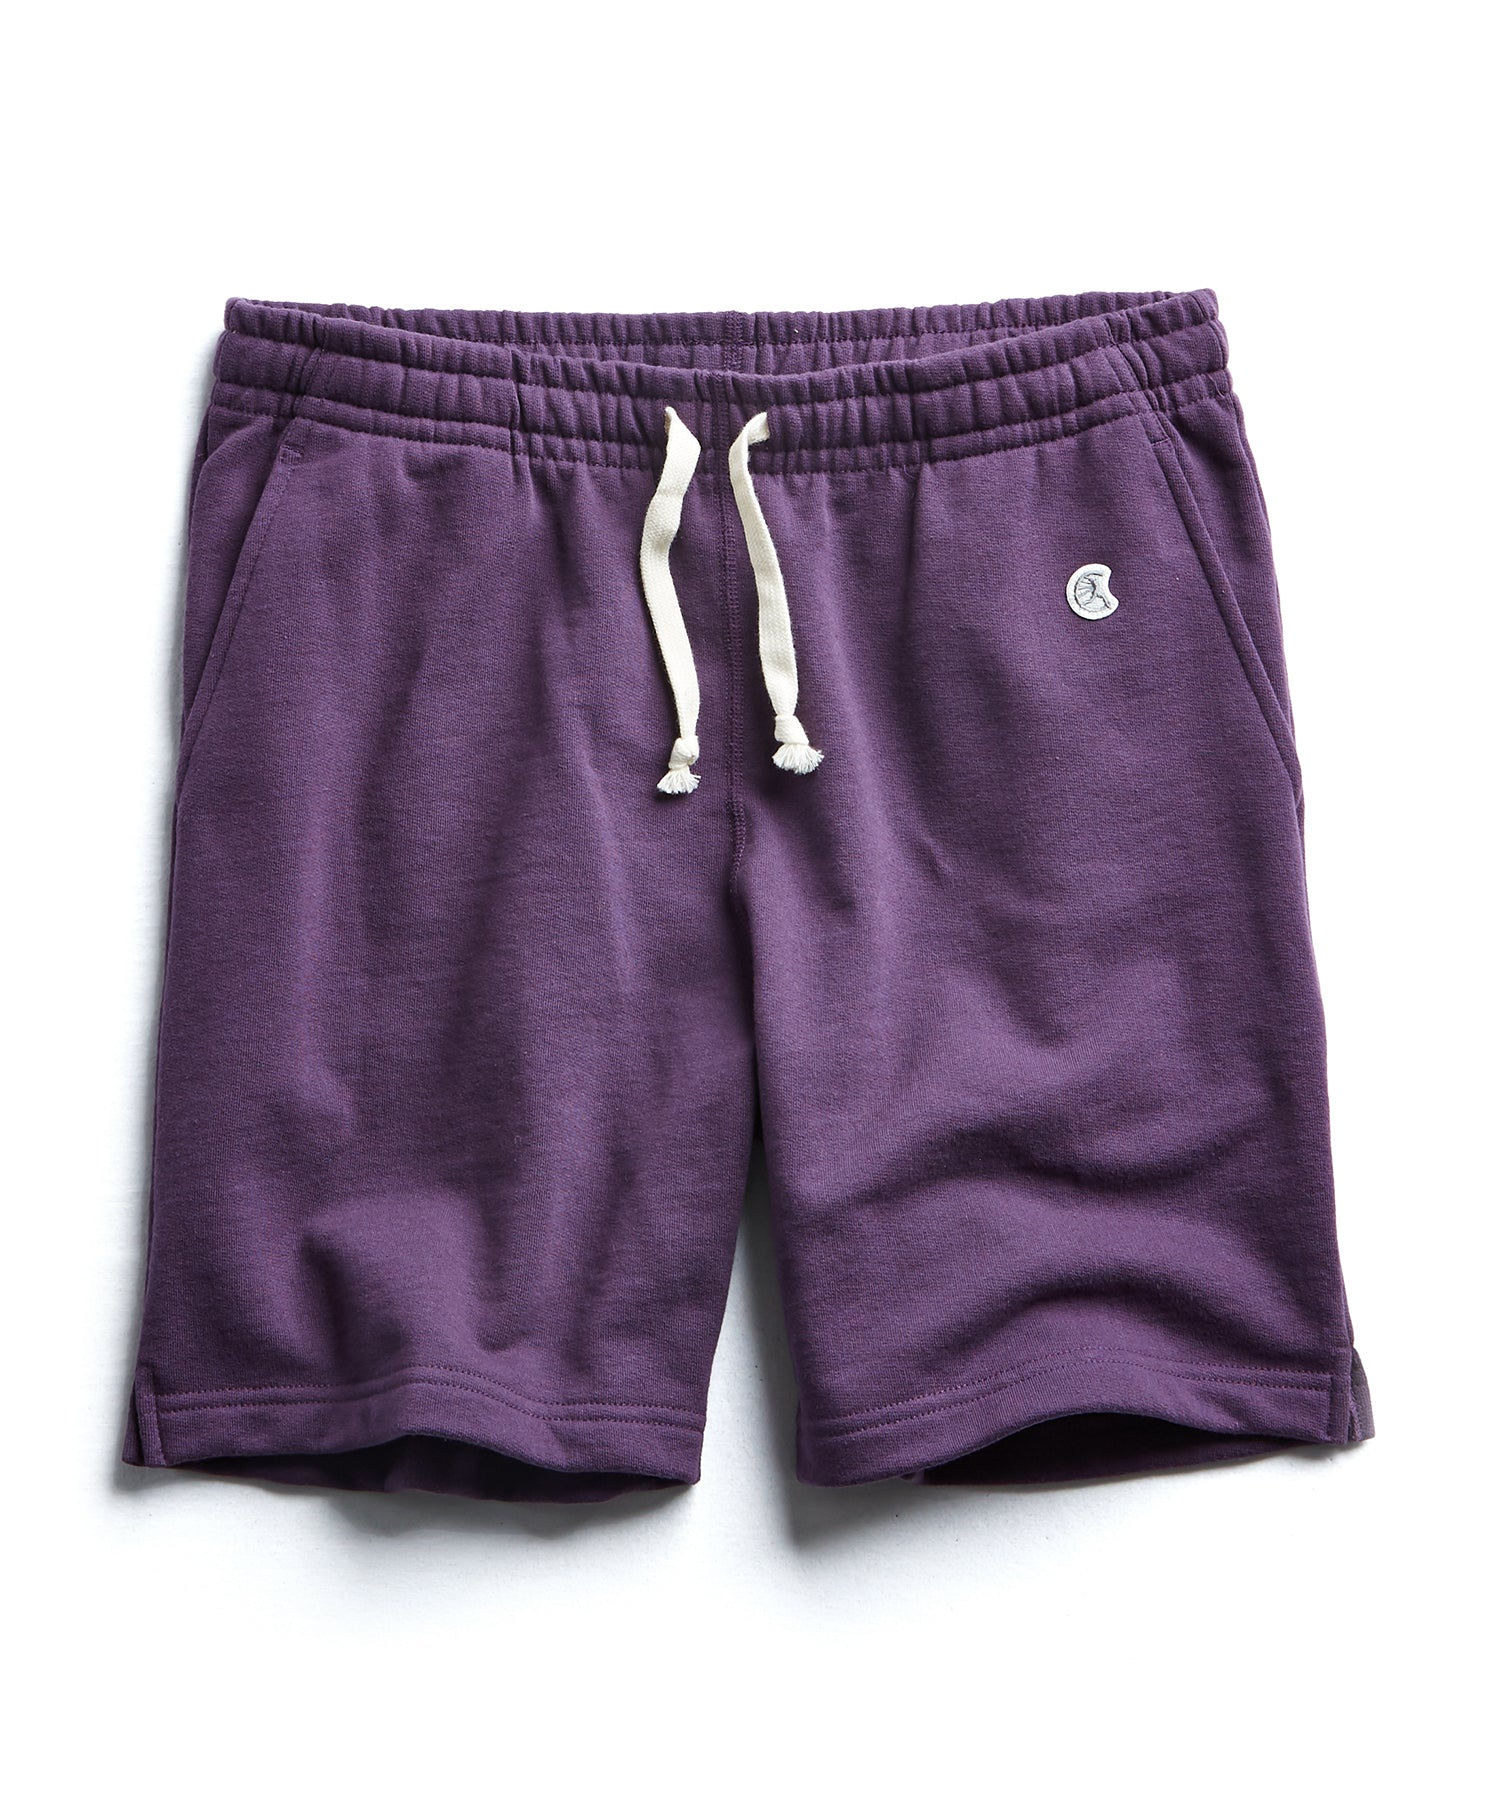 Terry Warm Up Short in Plum Royale